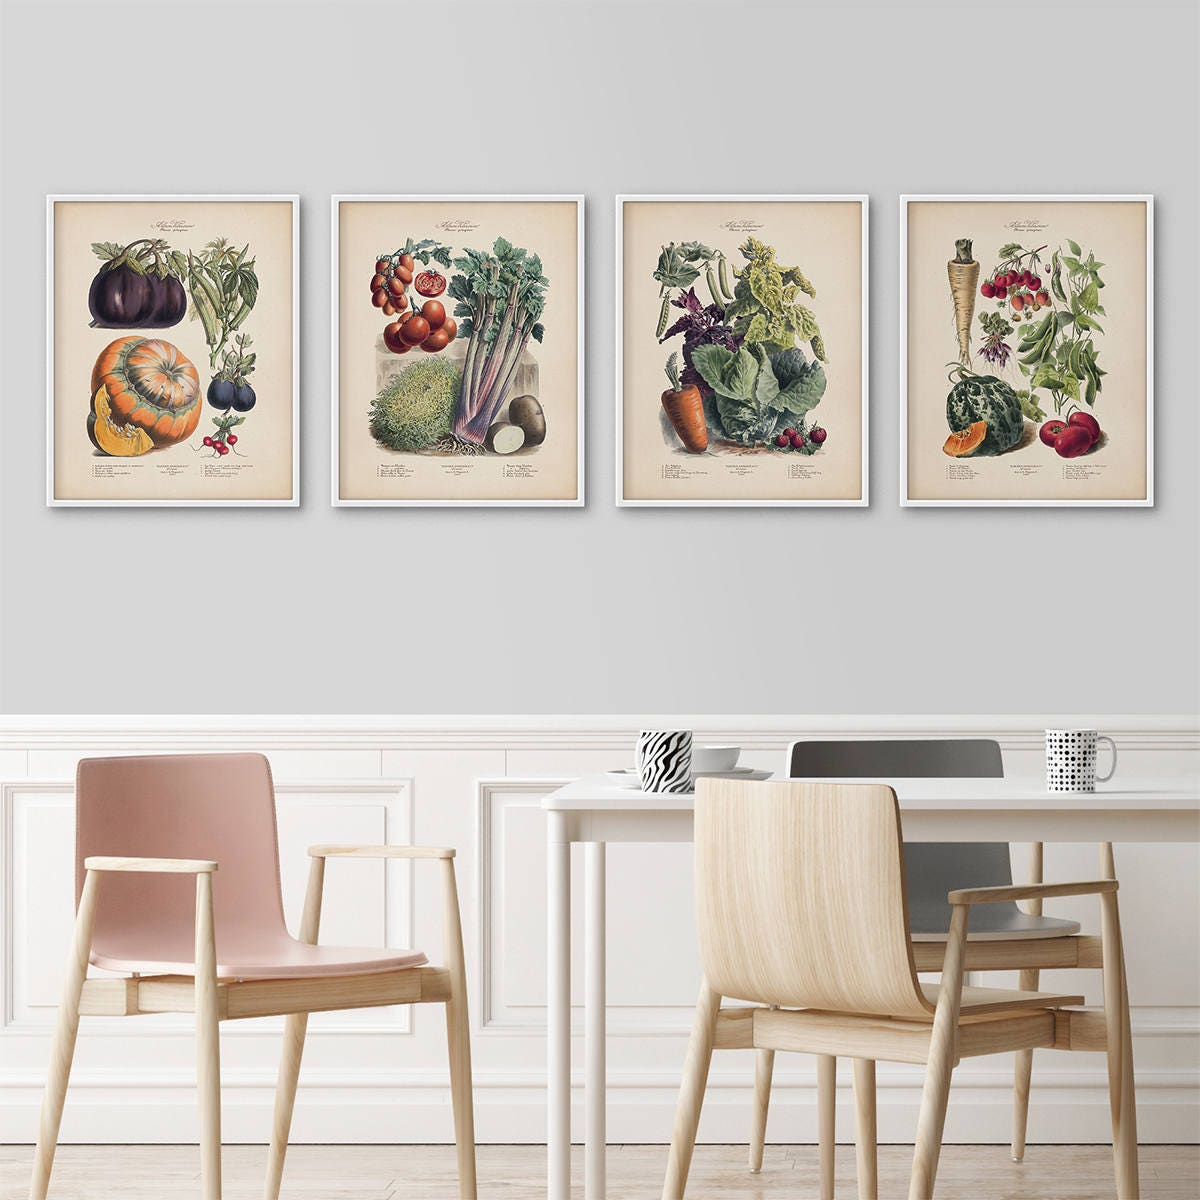 Kitchen Art Vegetables Print Botanicals Kitchen Art: Framed Botanical Prints Set French Vegetables Kitchen Art